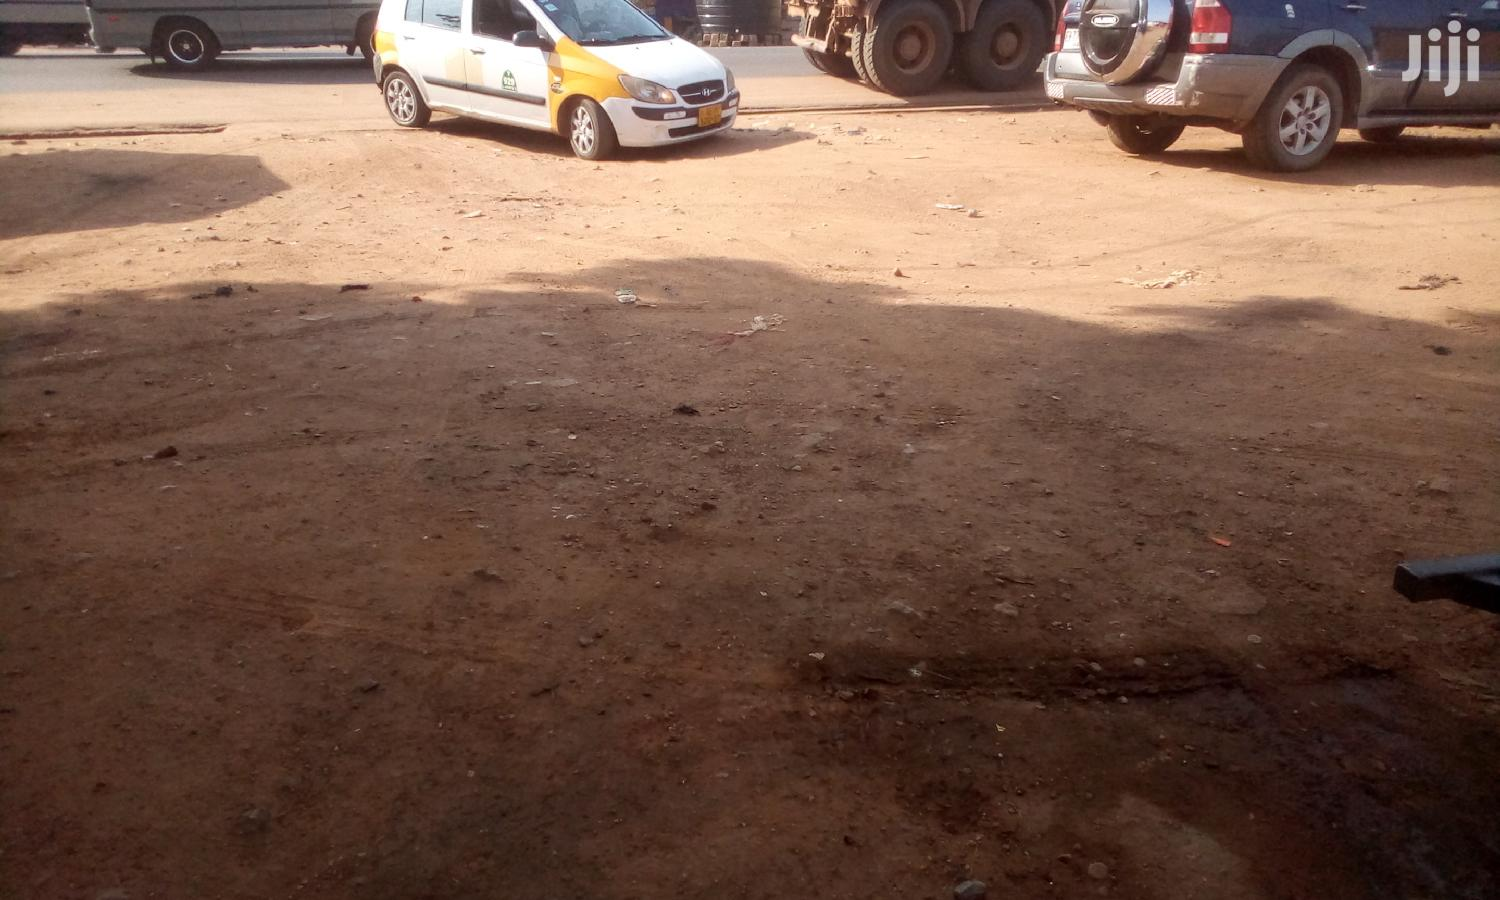 Genuine 2 Plots of Land Is Up for Sale at Madina Zongo Junct | Land & Plots For Sale for sale in Adenta, Greater Accra, Ghana